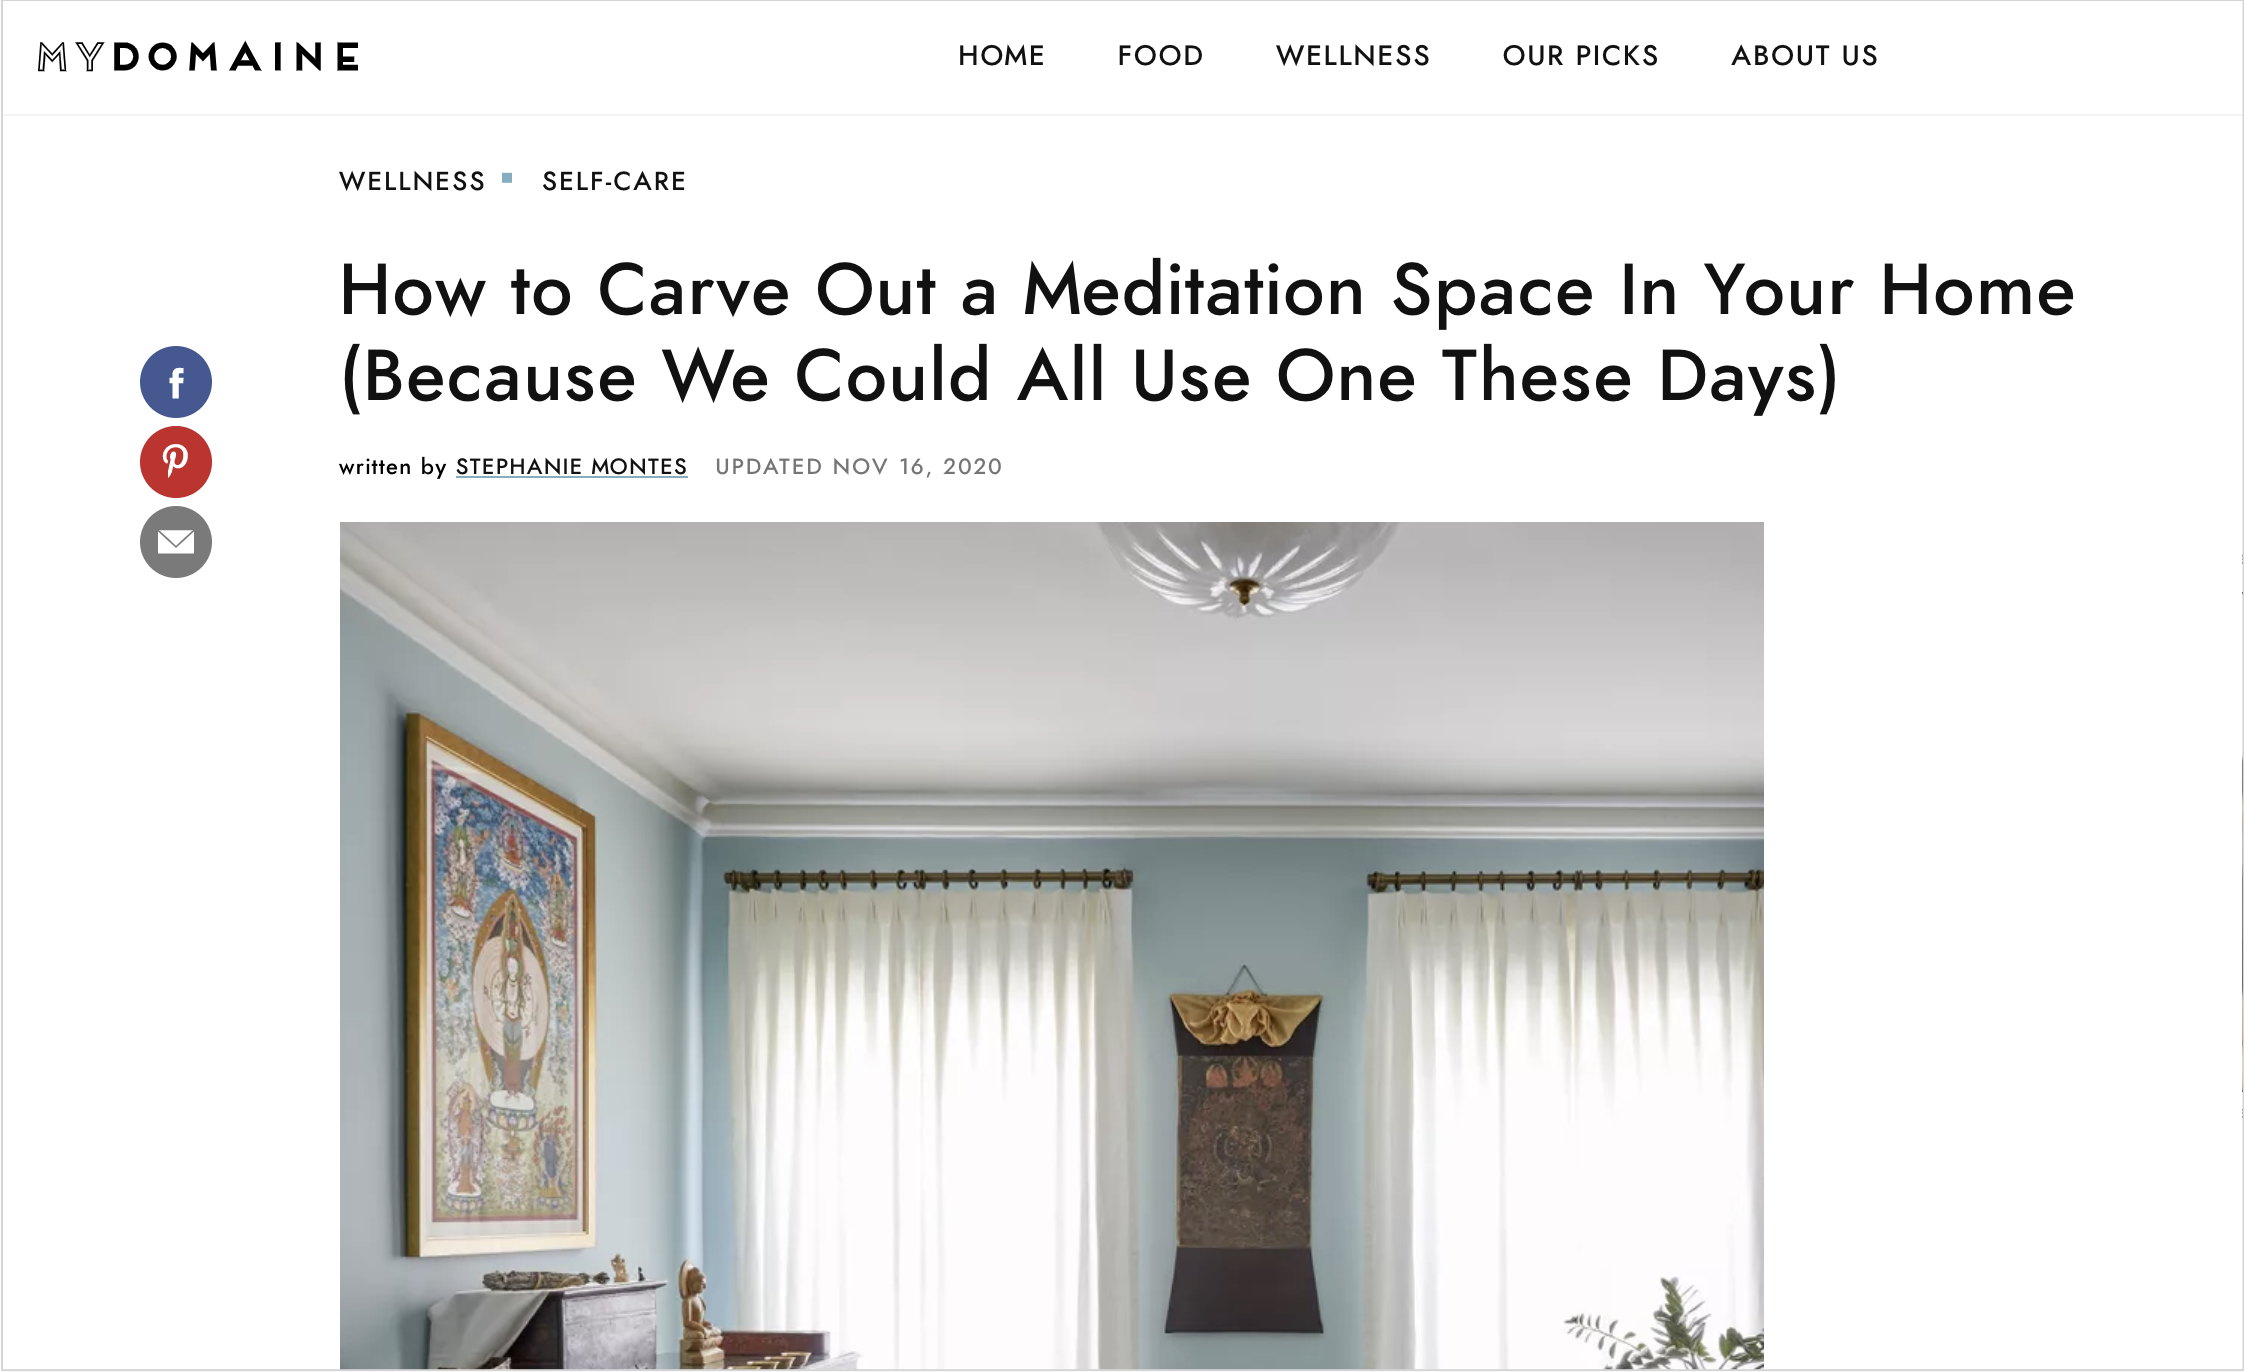 Yogmata was introduced on MyDomaine.com